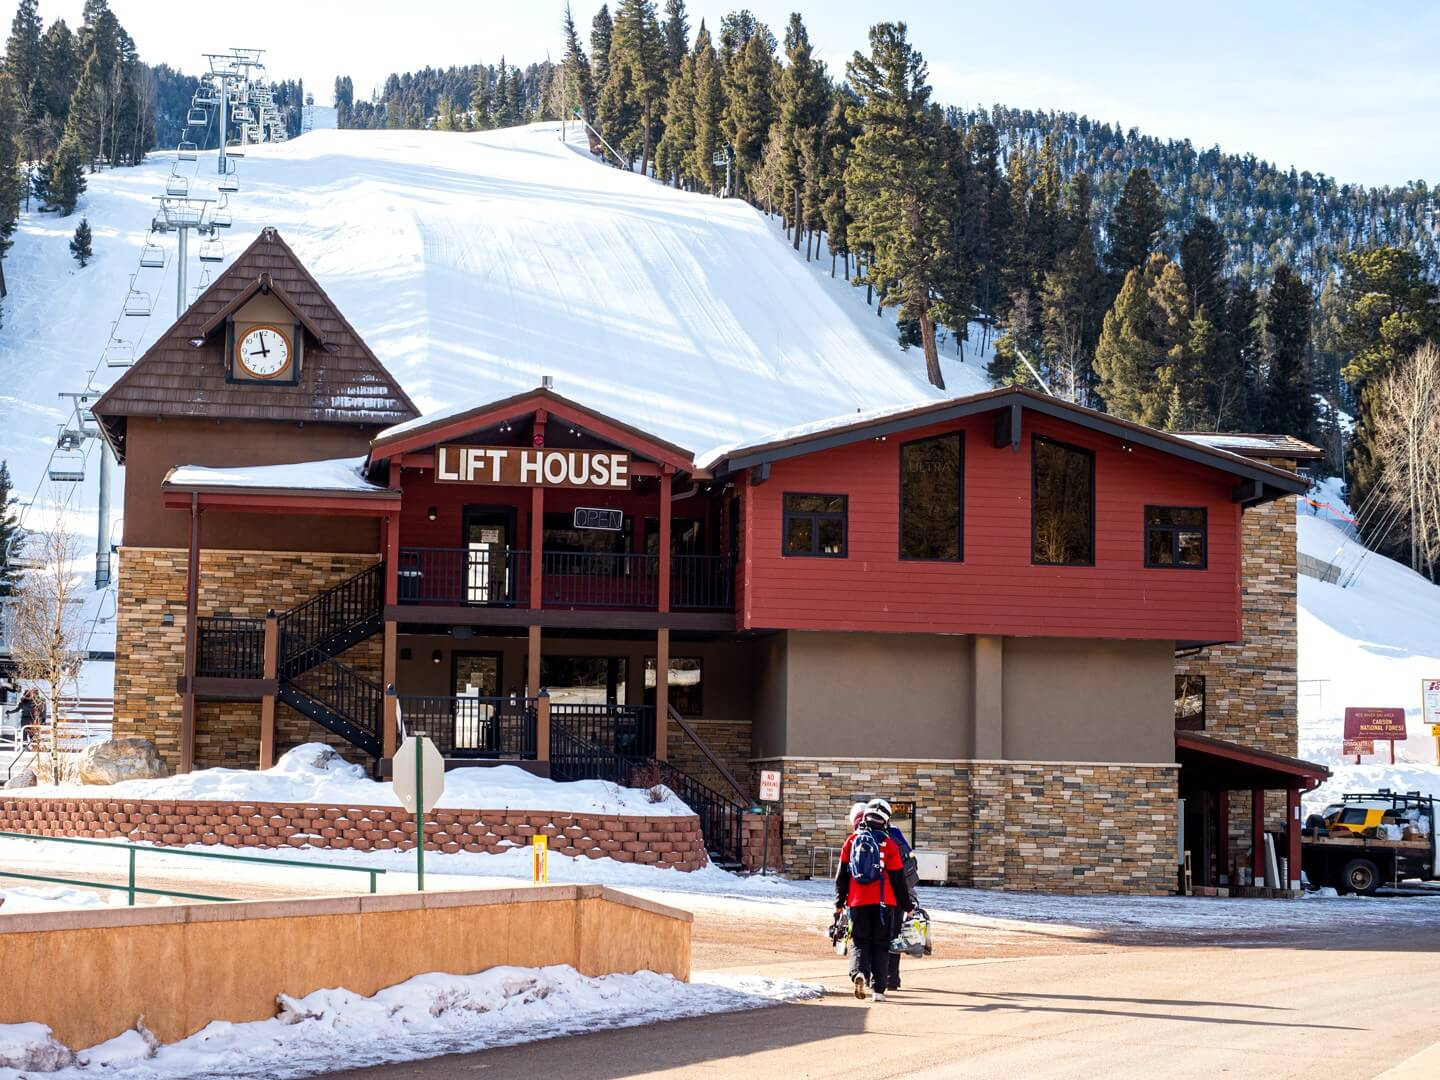 The Lift House at Red River Ski Area